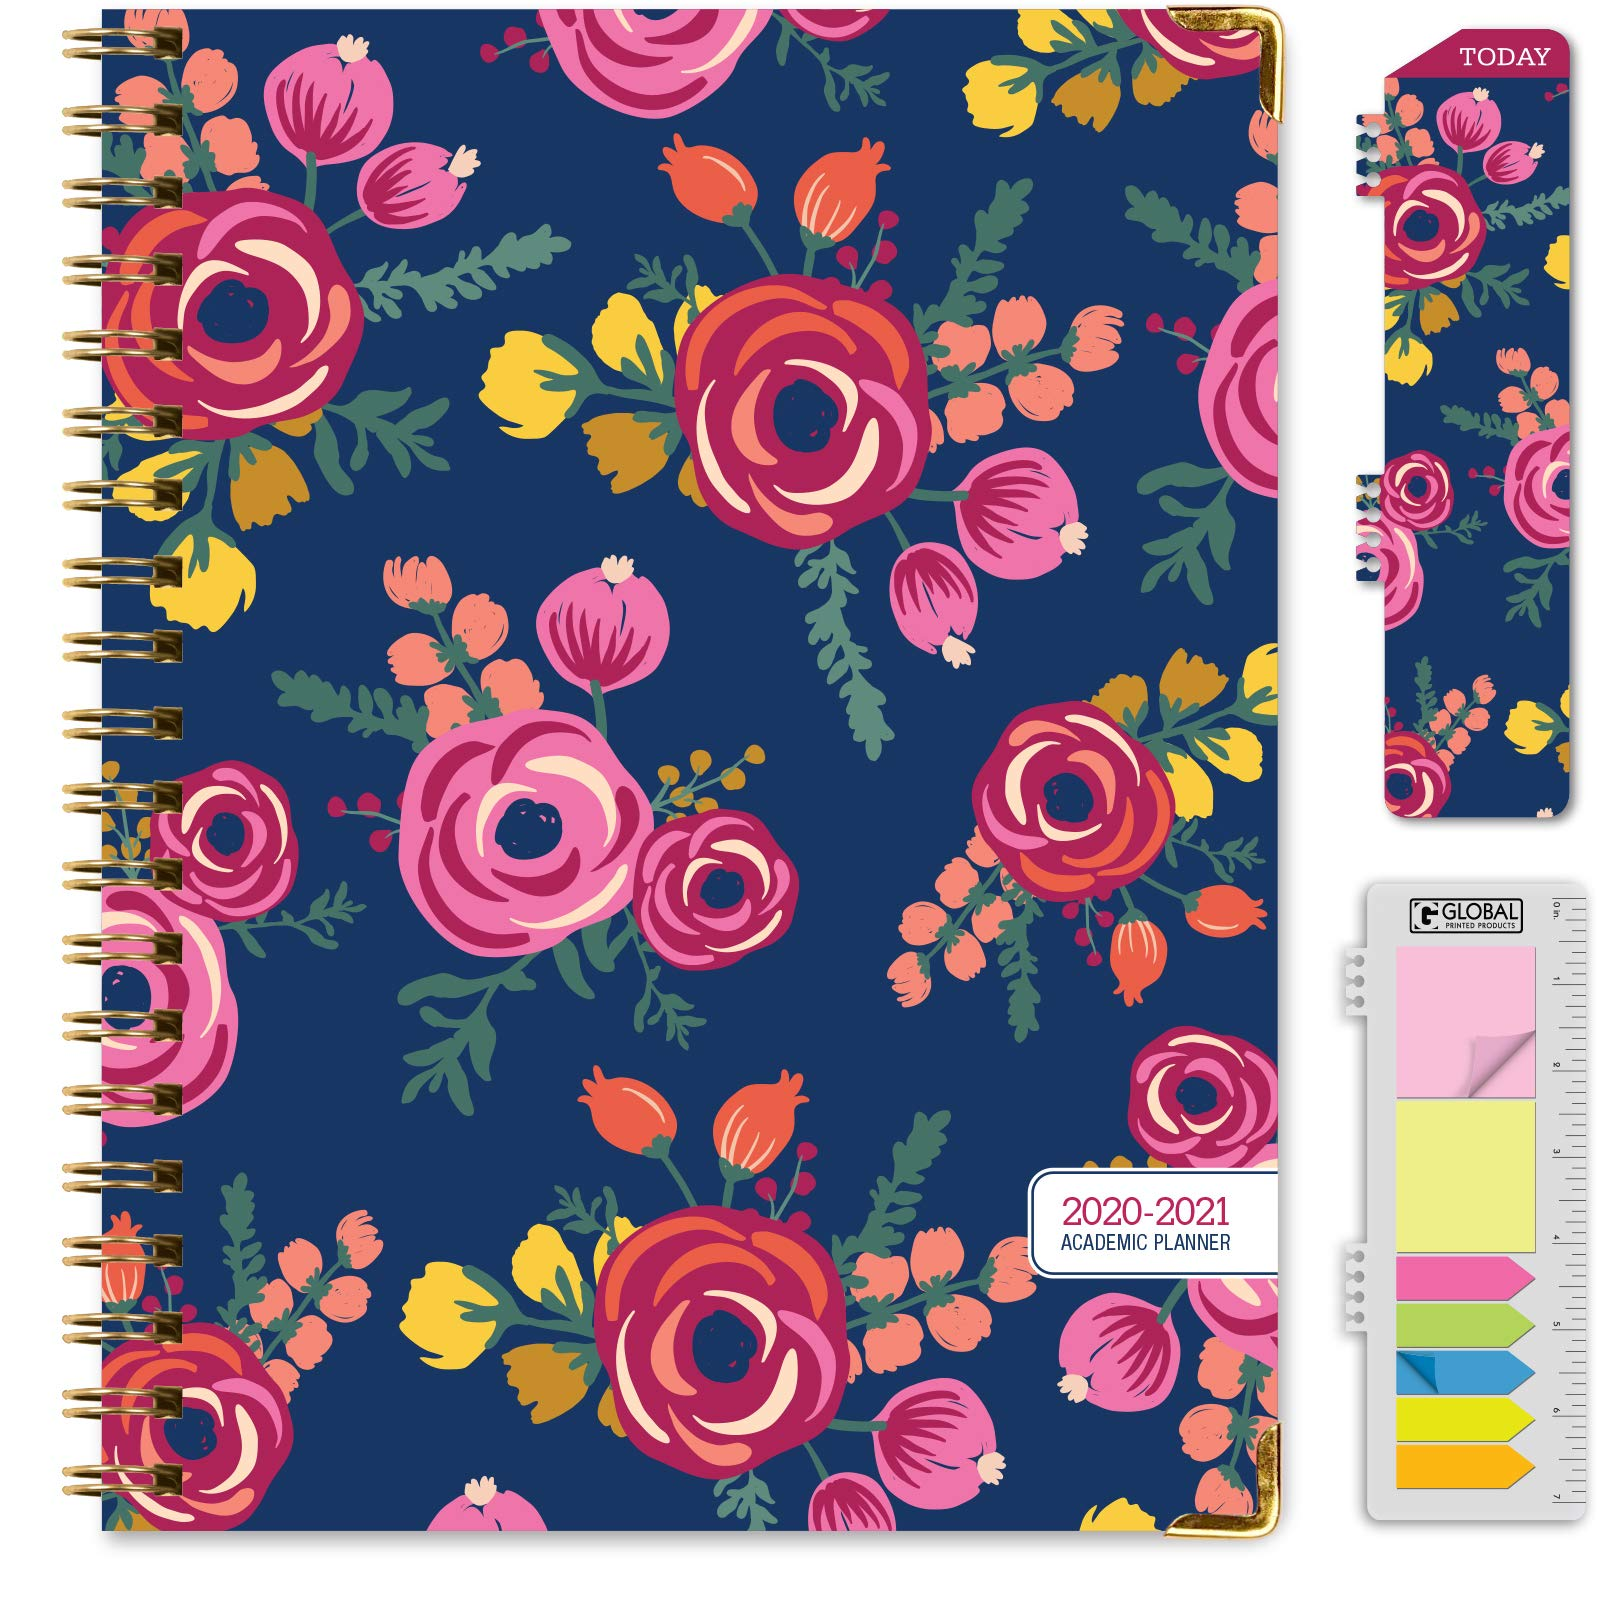 """HARDCOVER Academic Year 2020-2021 Planner: (June 2020 Through July 2021) 8.5""""x11"""" Daily Weekly Monthly Planner Yearly Agenda. Bonus Bookmark, Pocket Folder and Sticky Note Set"""